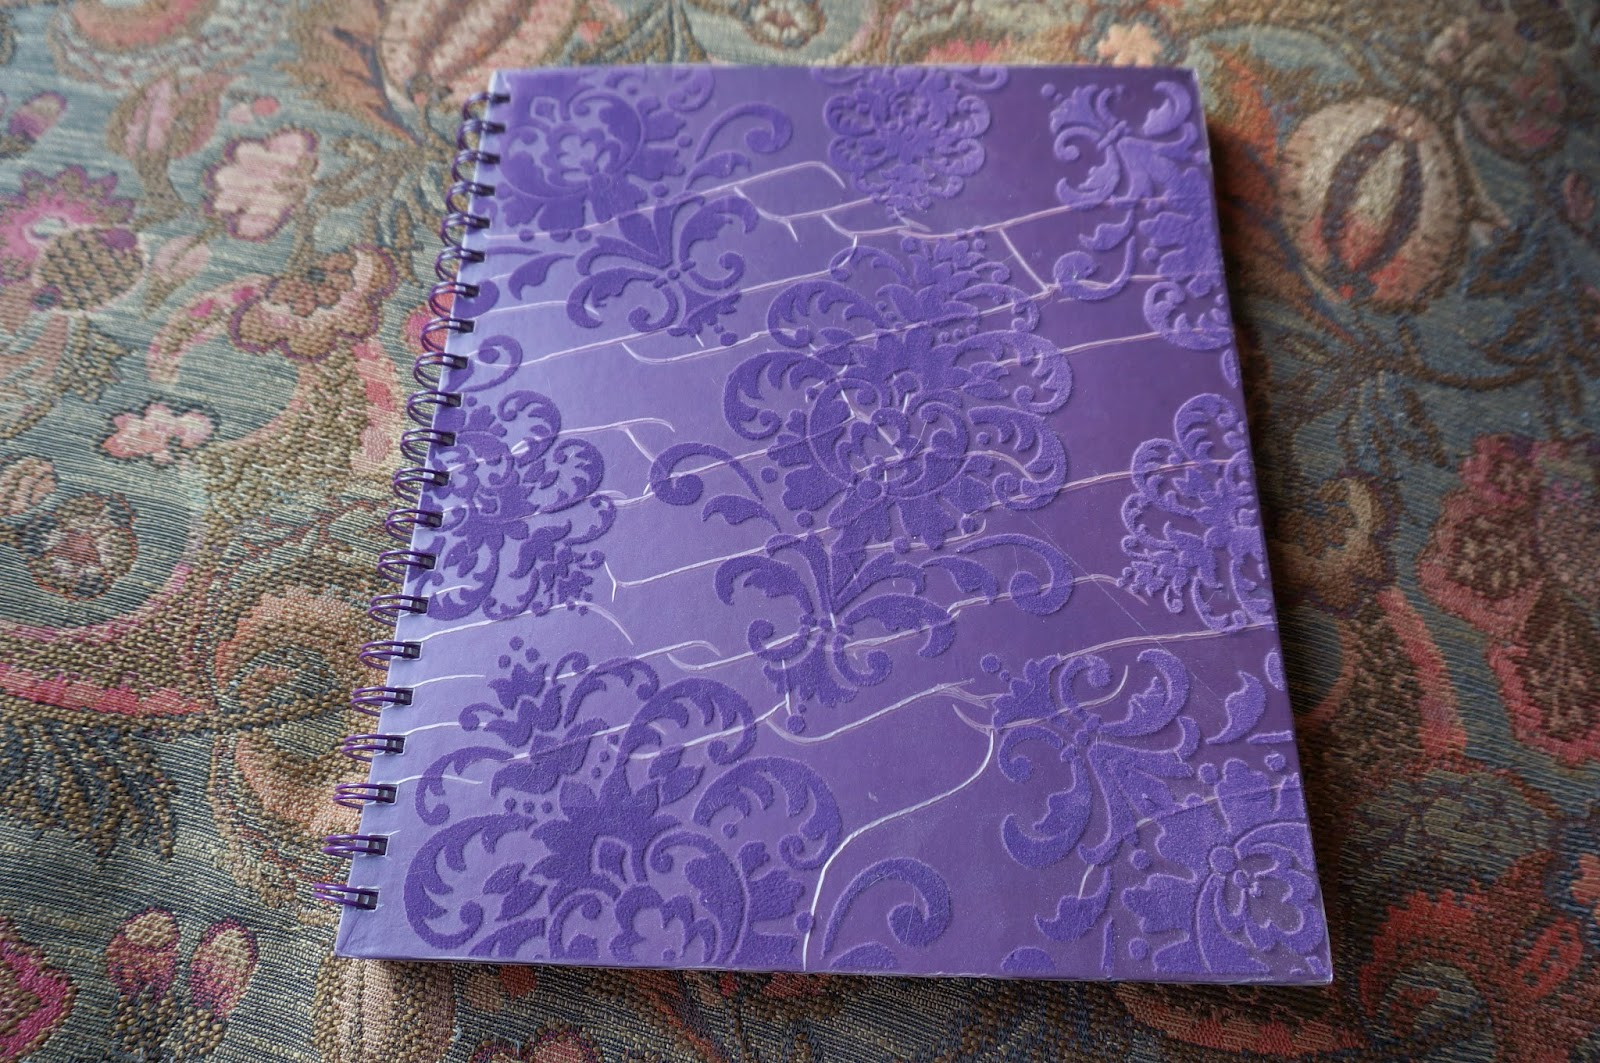 Plan for Spring with a garden journal